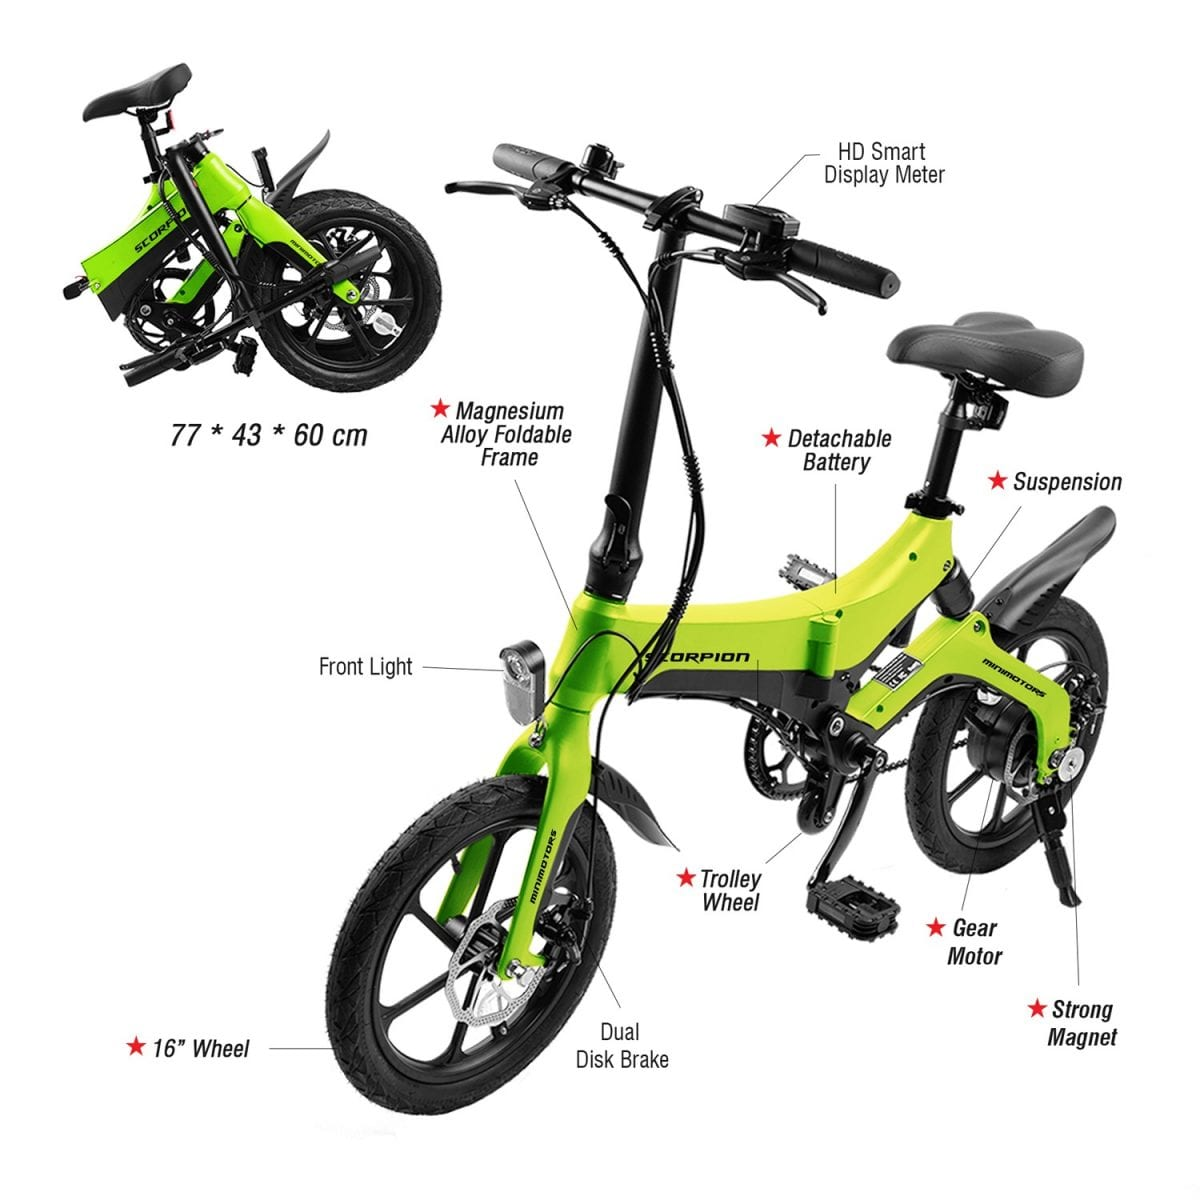 Scorpion Electric Bicycle Details